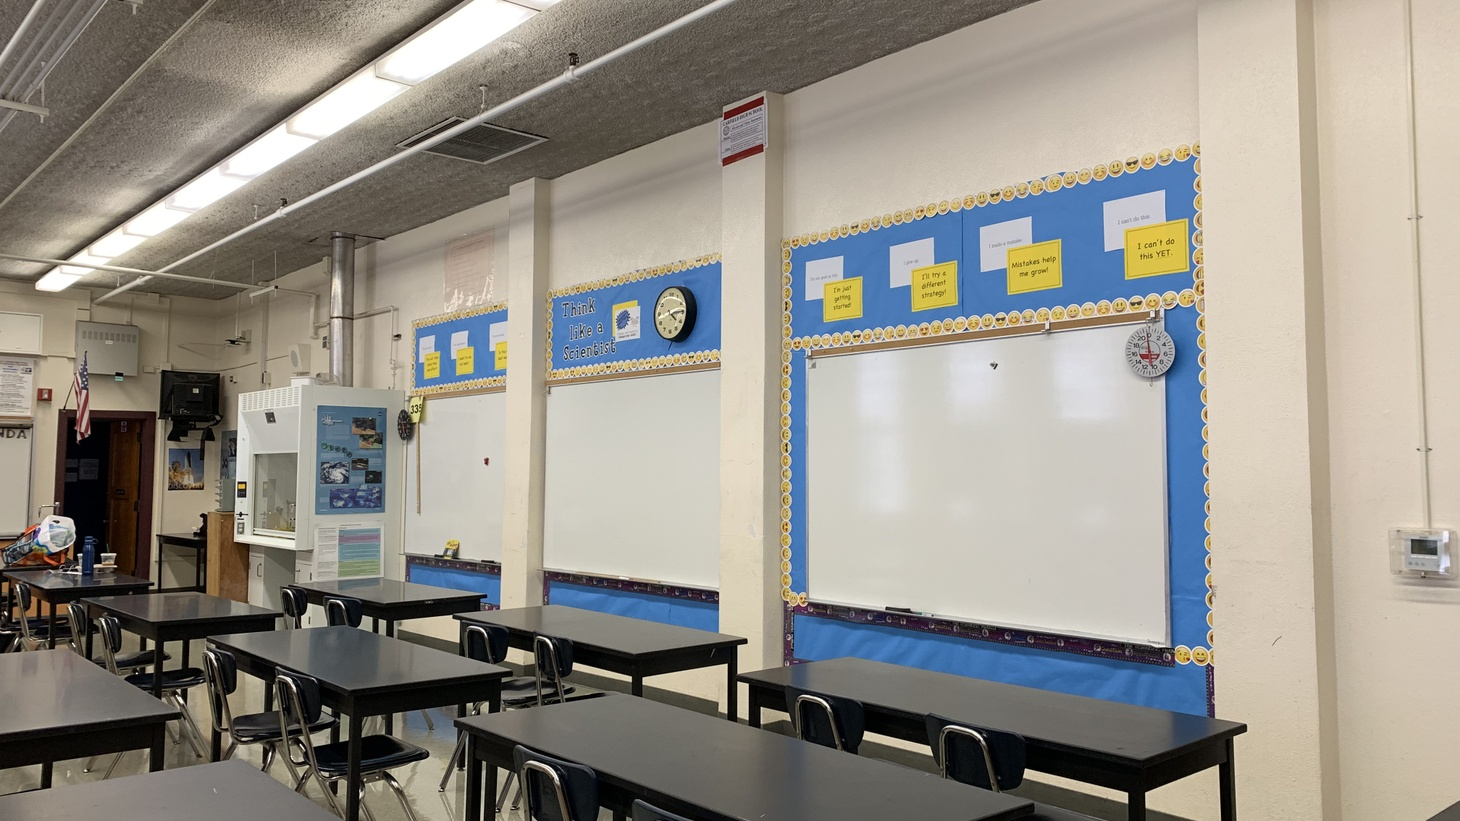 LAUSD students won't be going into physical classrooms this fall. All courses will be online only.